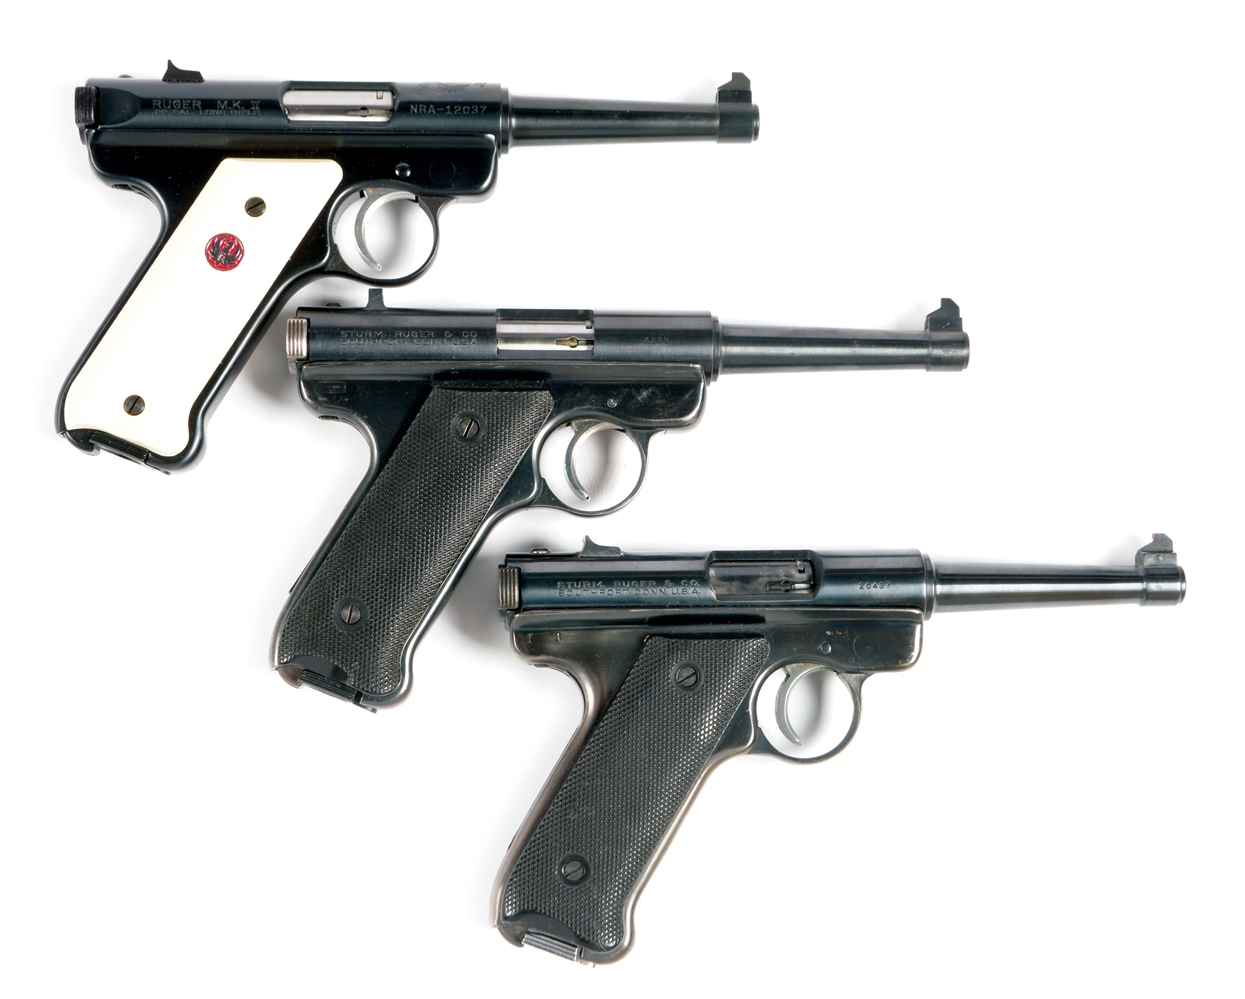 (C) LOT OF THREE: RUGER .22 SEMI-AUTOMATIC PISTOLS, INCLUDING TWO PRE-1952 MODELS.